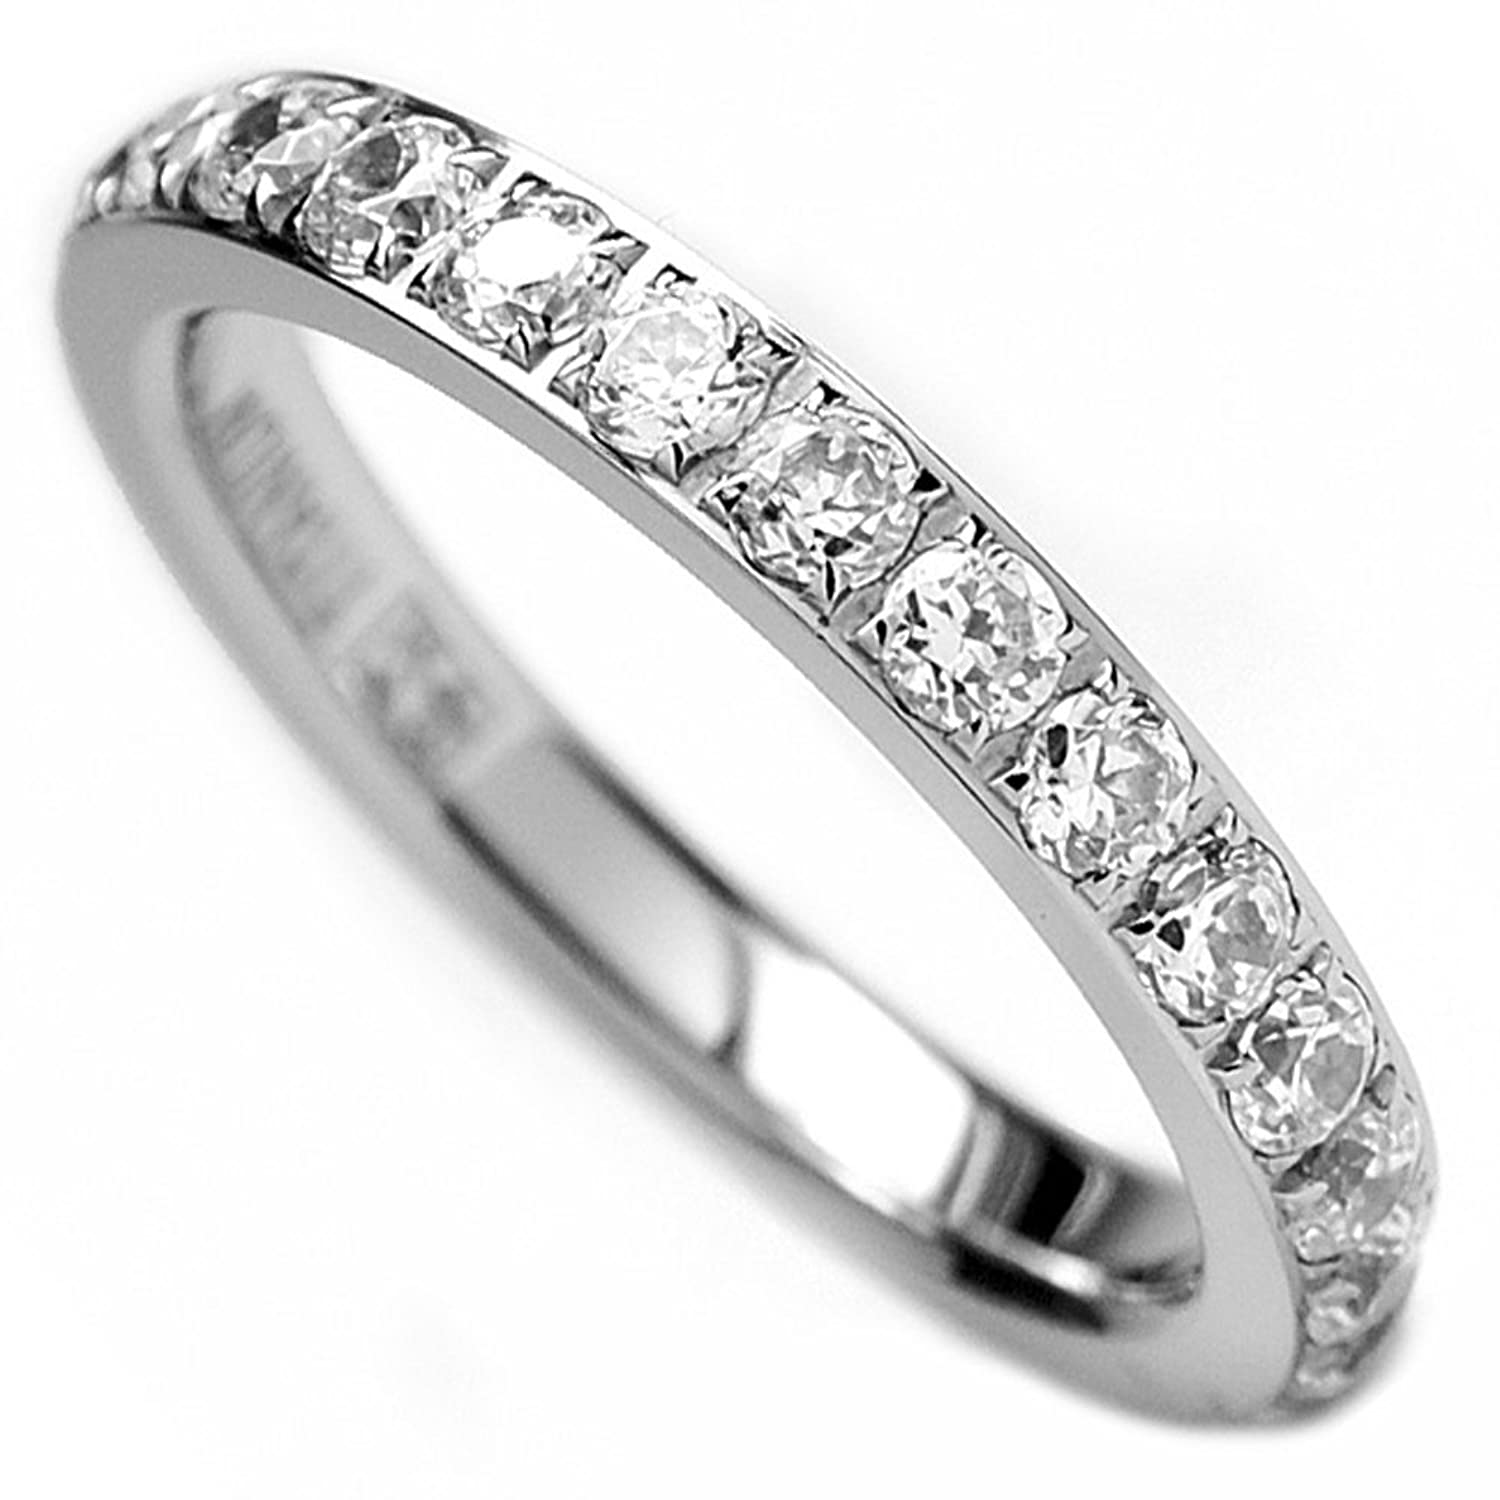 contemporary jewelry wedding diamond ring zirconia cz anniversary filigree bands products band fashion paved celebrity faux promise carpet trisha cocktail statement wide carat cut round red eternity cubic bridal travel cluster